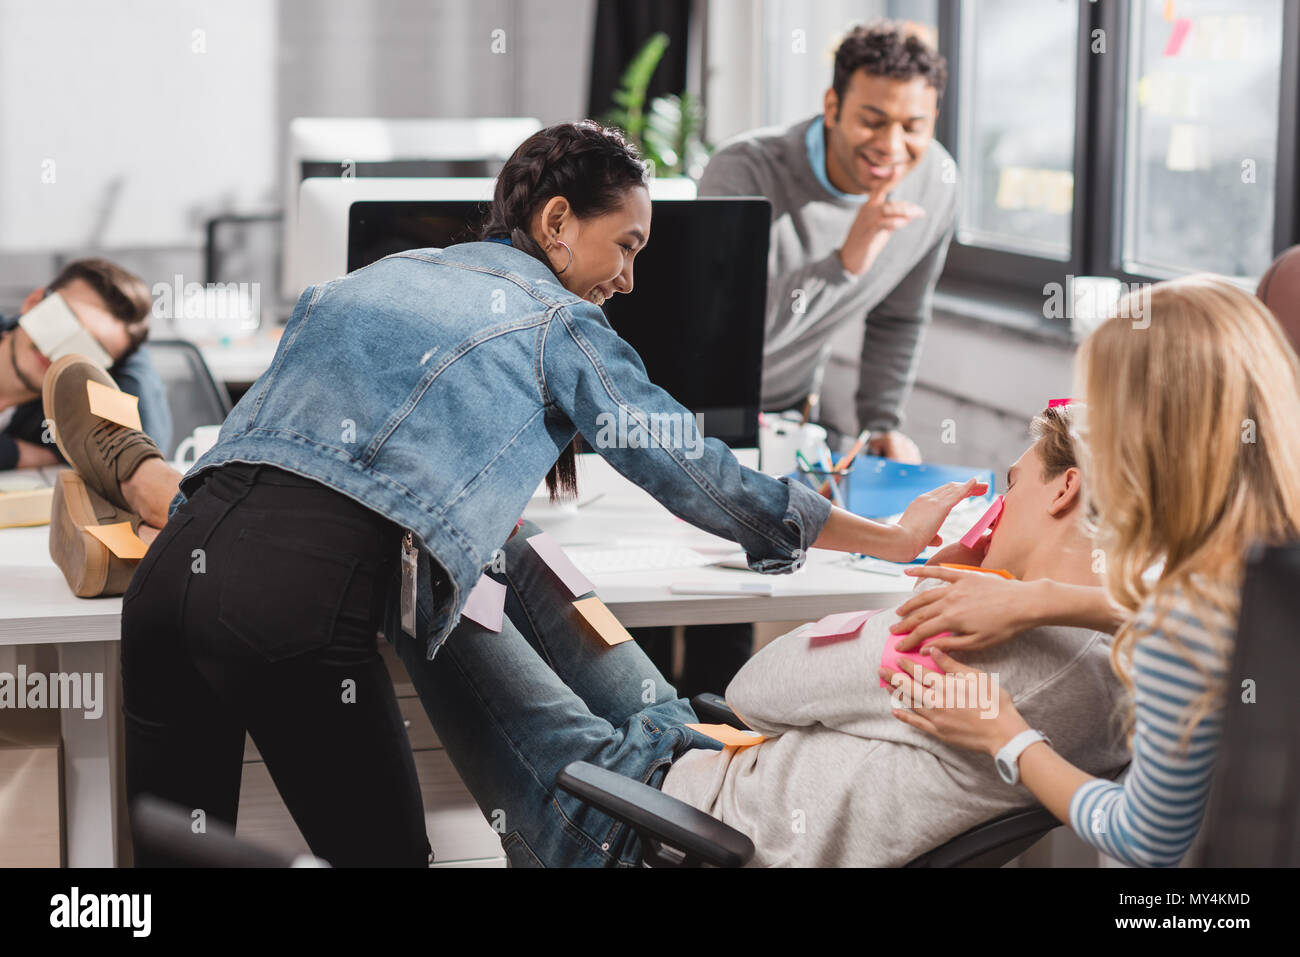 people having fun in office, women glue stickers on man - Stock Image